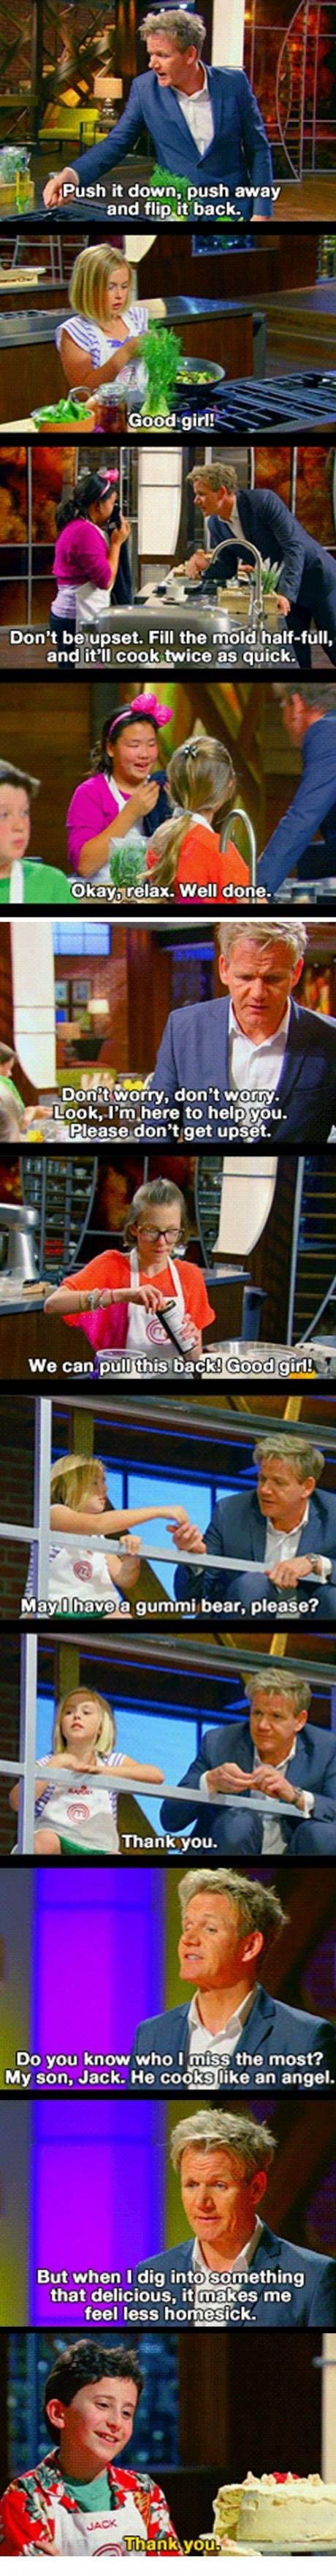 Gordon Ramsay is a different man when it comes to kids.